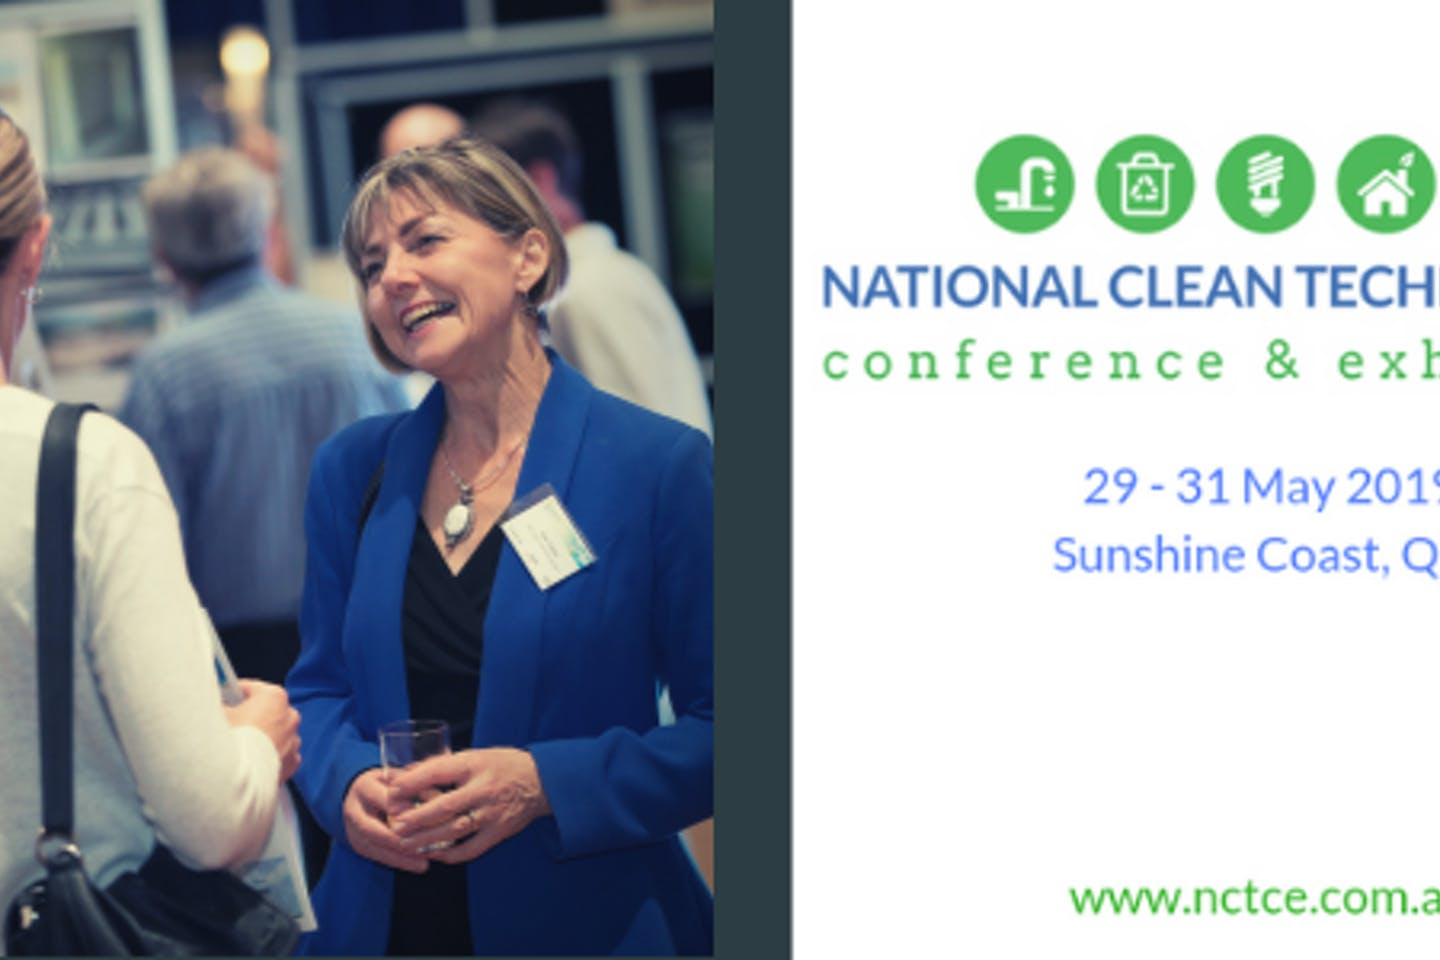 National Clean Technologies Conference & Exhibition